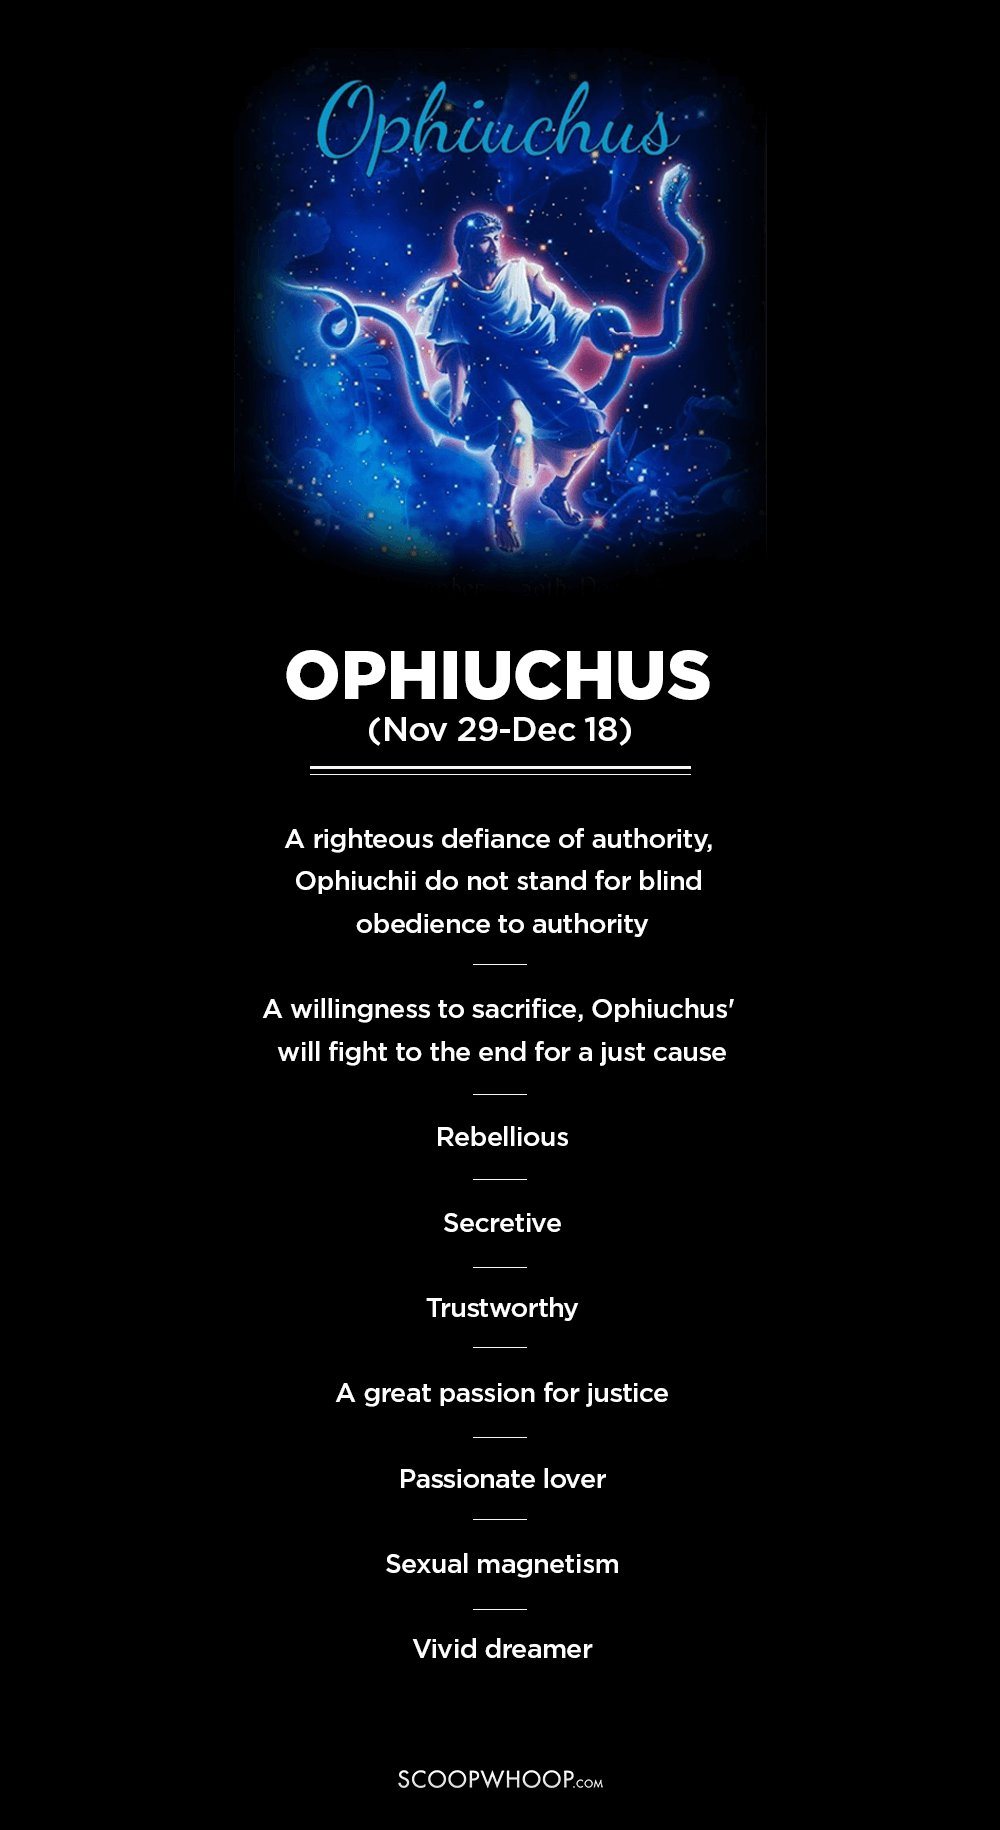 Ophiuchus Mythology: The Snake Charmer